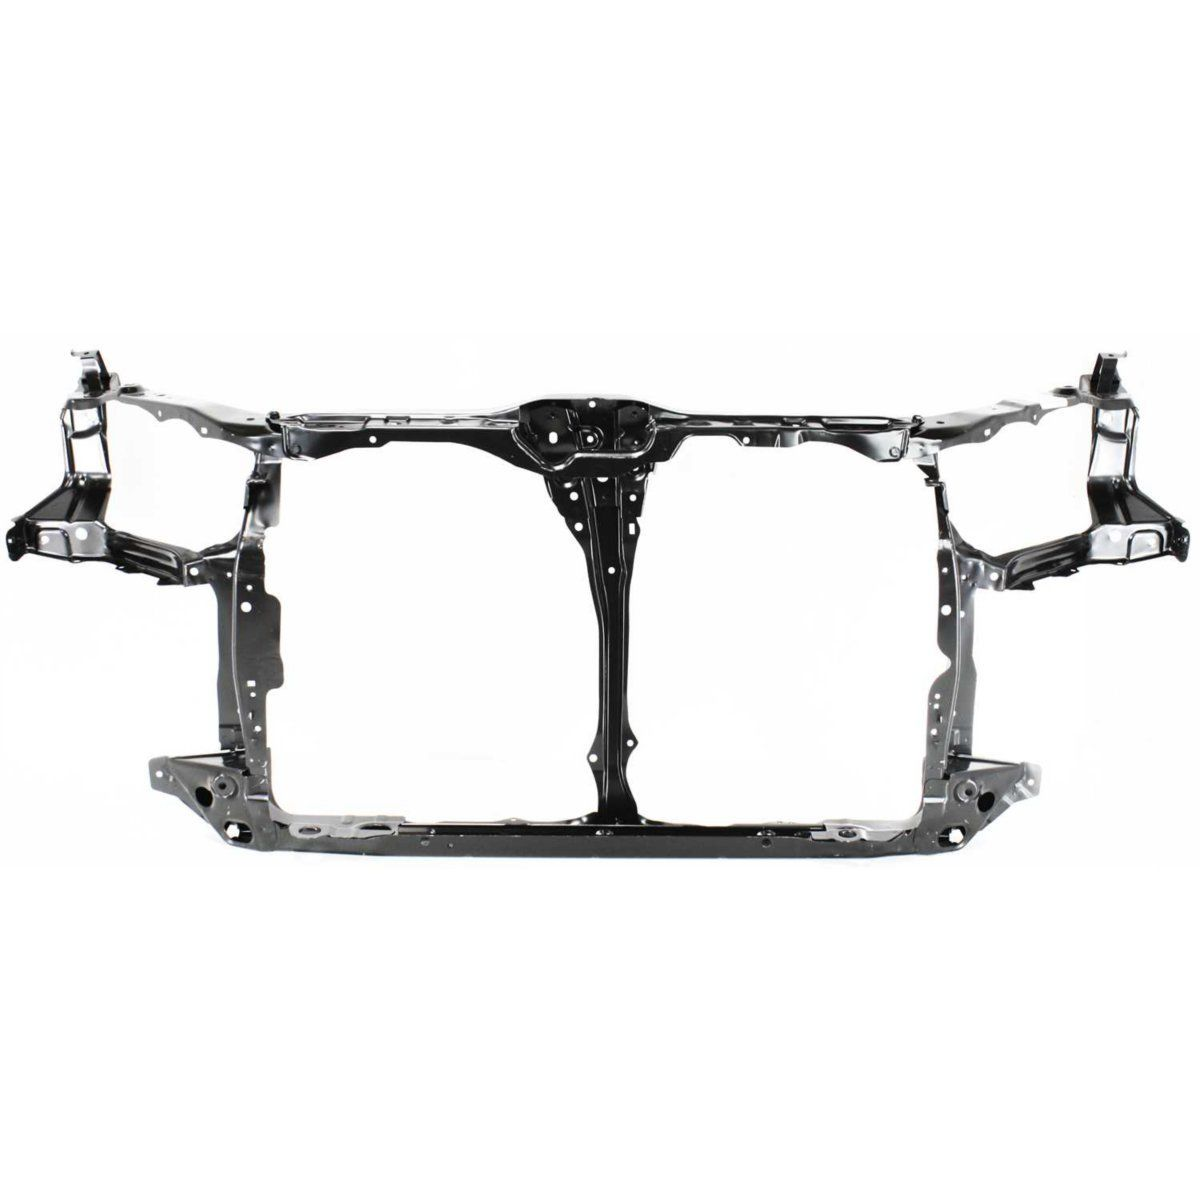 Radiator Support For 2002-2006 Acura RSX Primed Assembly